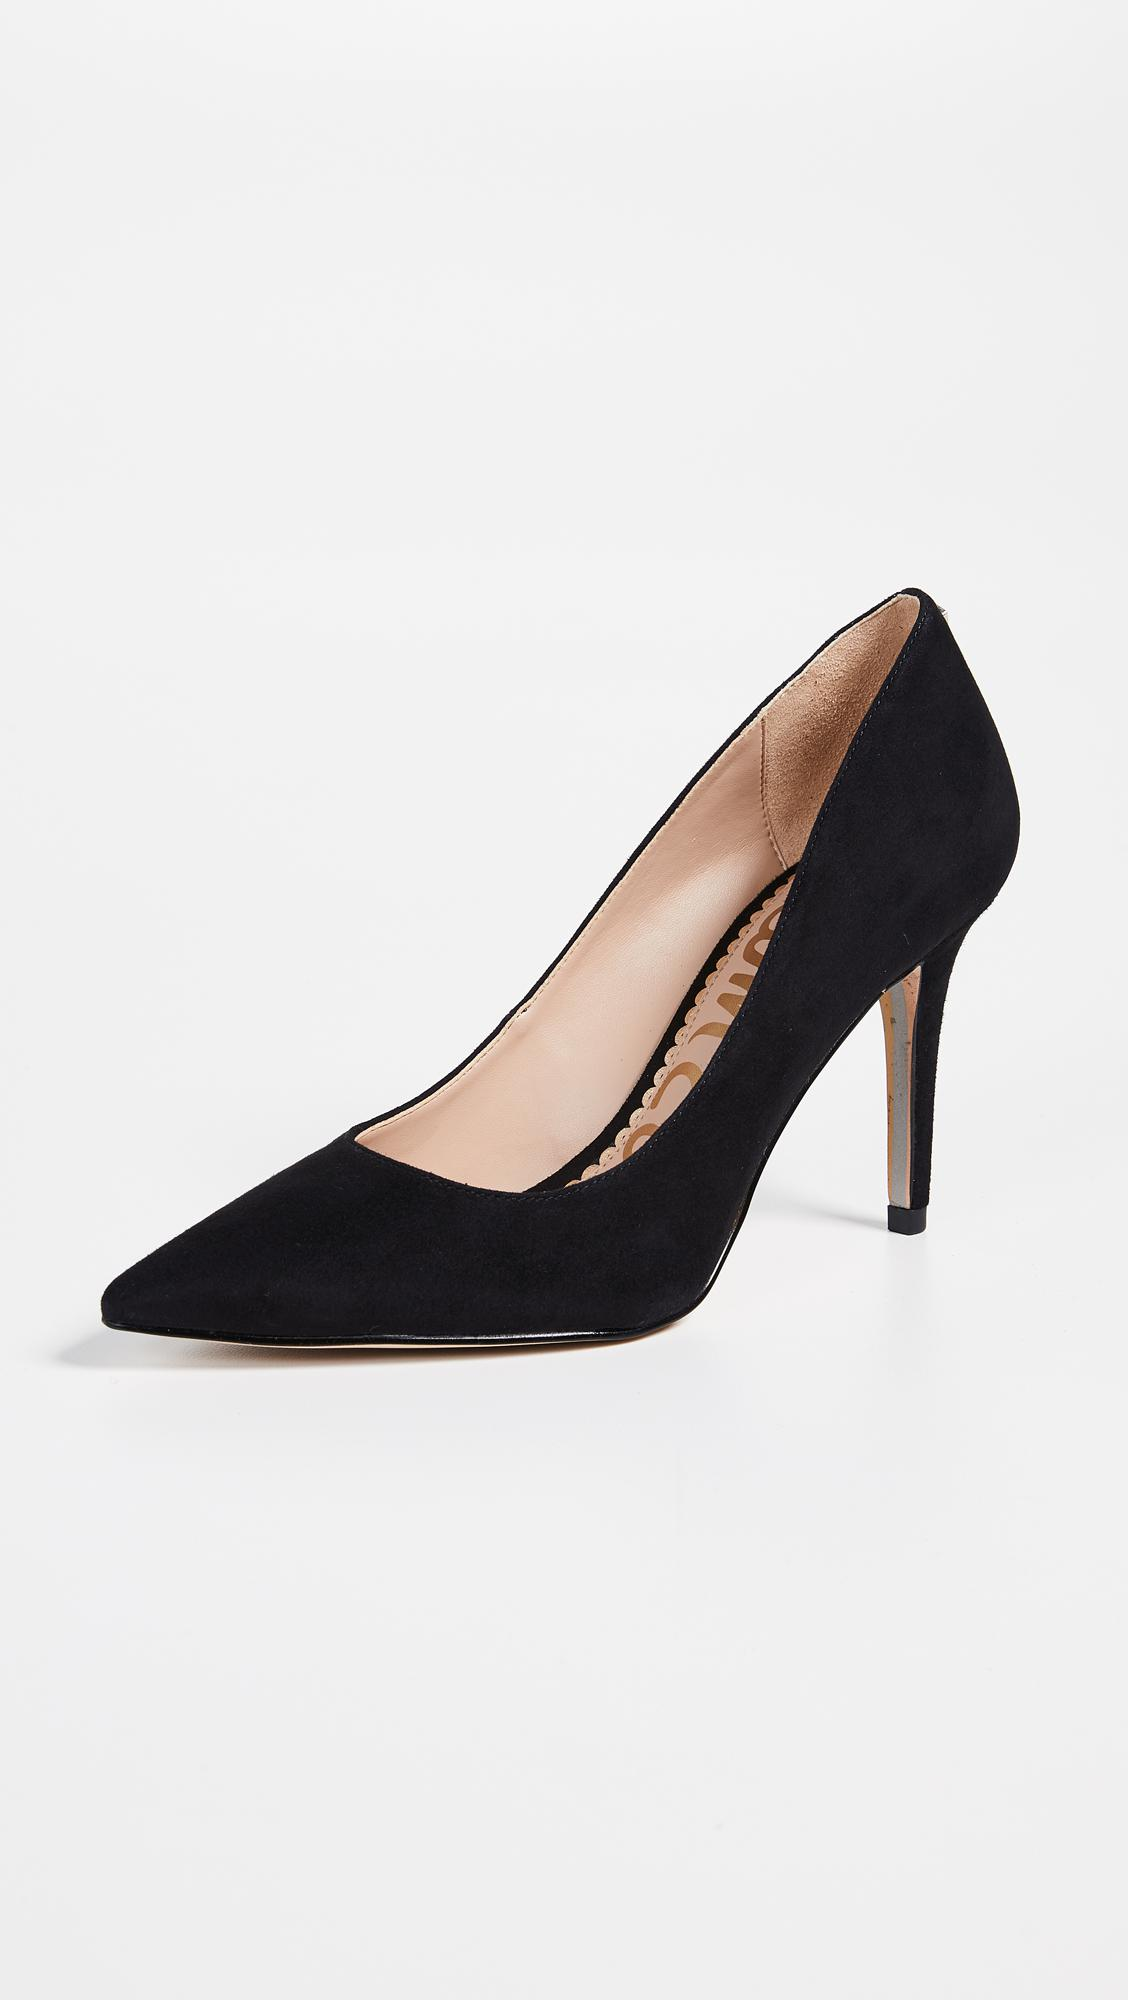 f4885e952030 Lyst - Sam Edelman Margie Pumps in Black